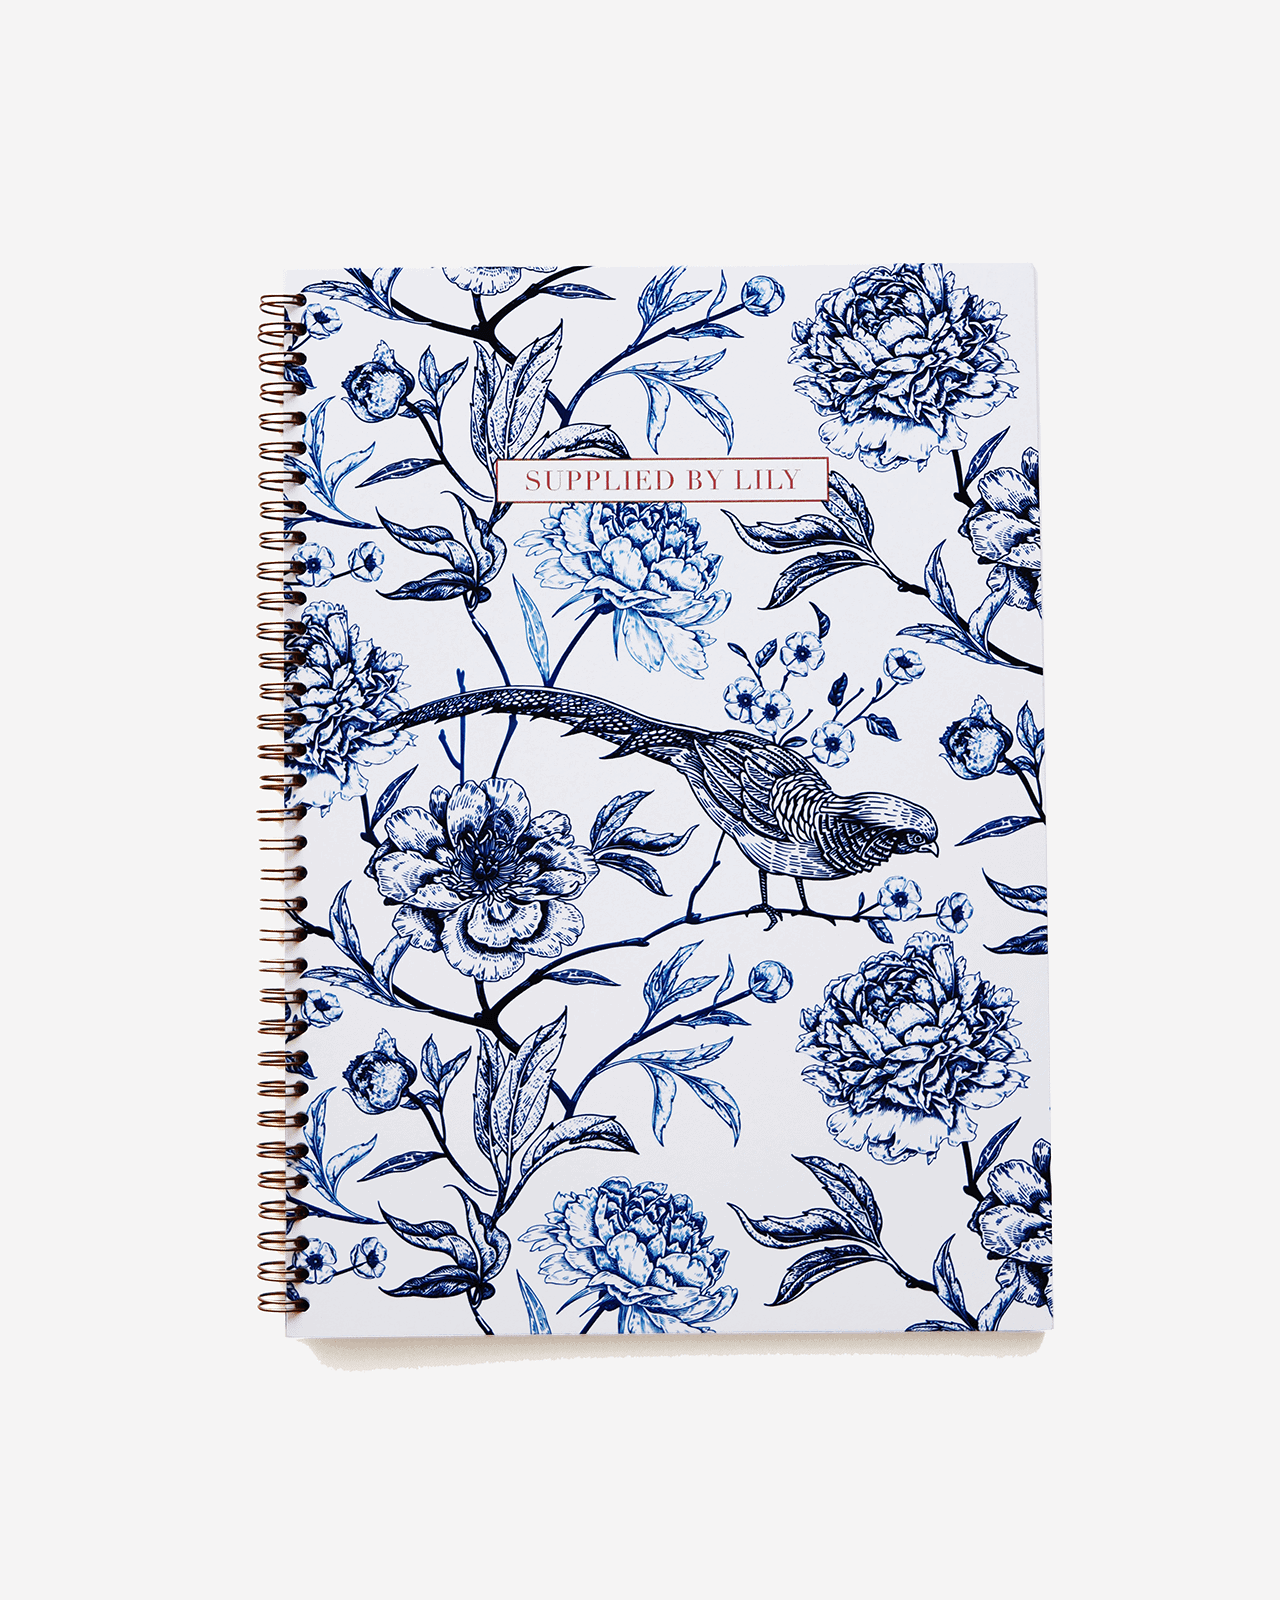 Supplied by Lily A4 Spiral Notebook in Luxurious Toile de Jouy